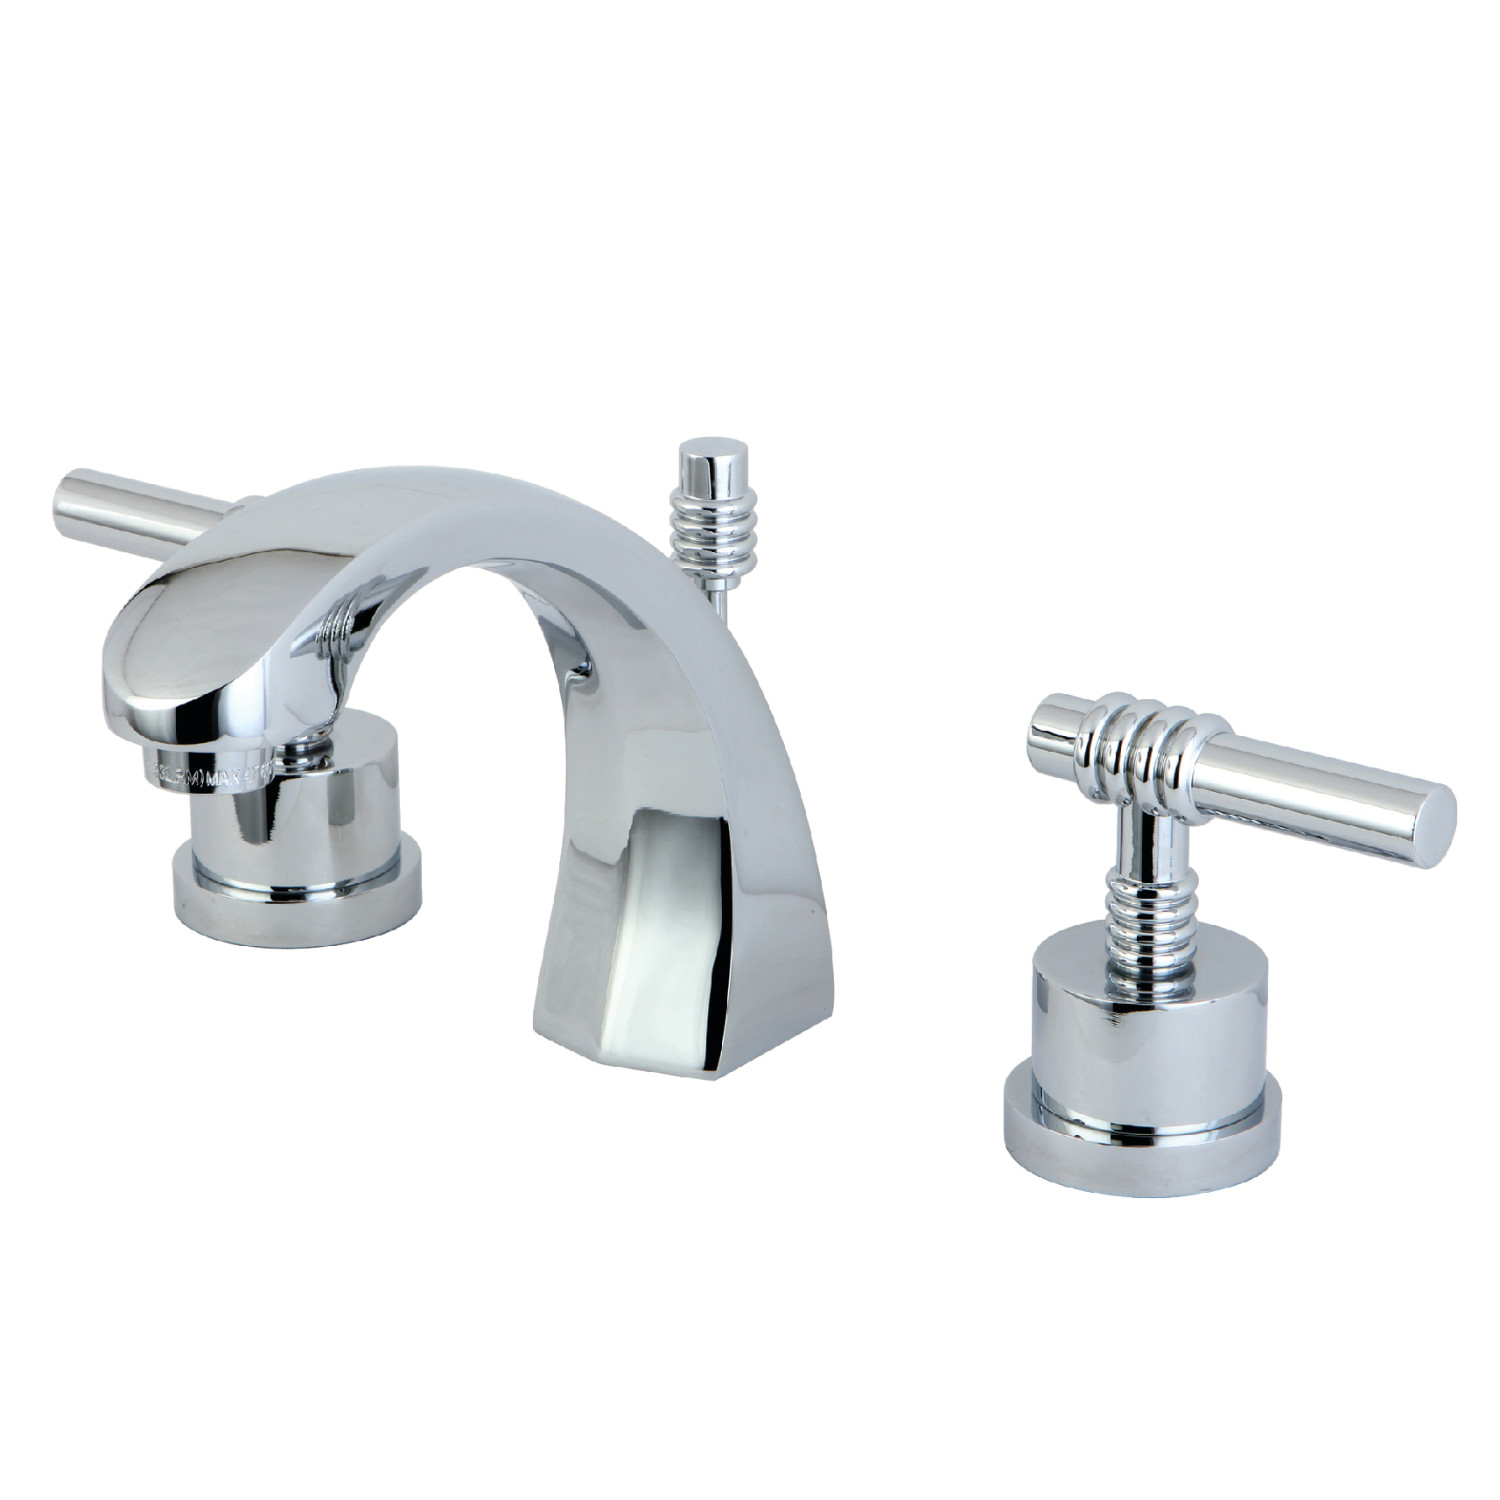 Modern Two-Handle 3-Hole Deck Mounted Widespread Bathroom Faucet with Brass Pop-Up in Polished Chrome with 4 Color Options